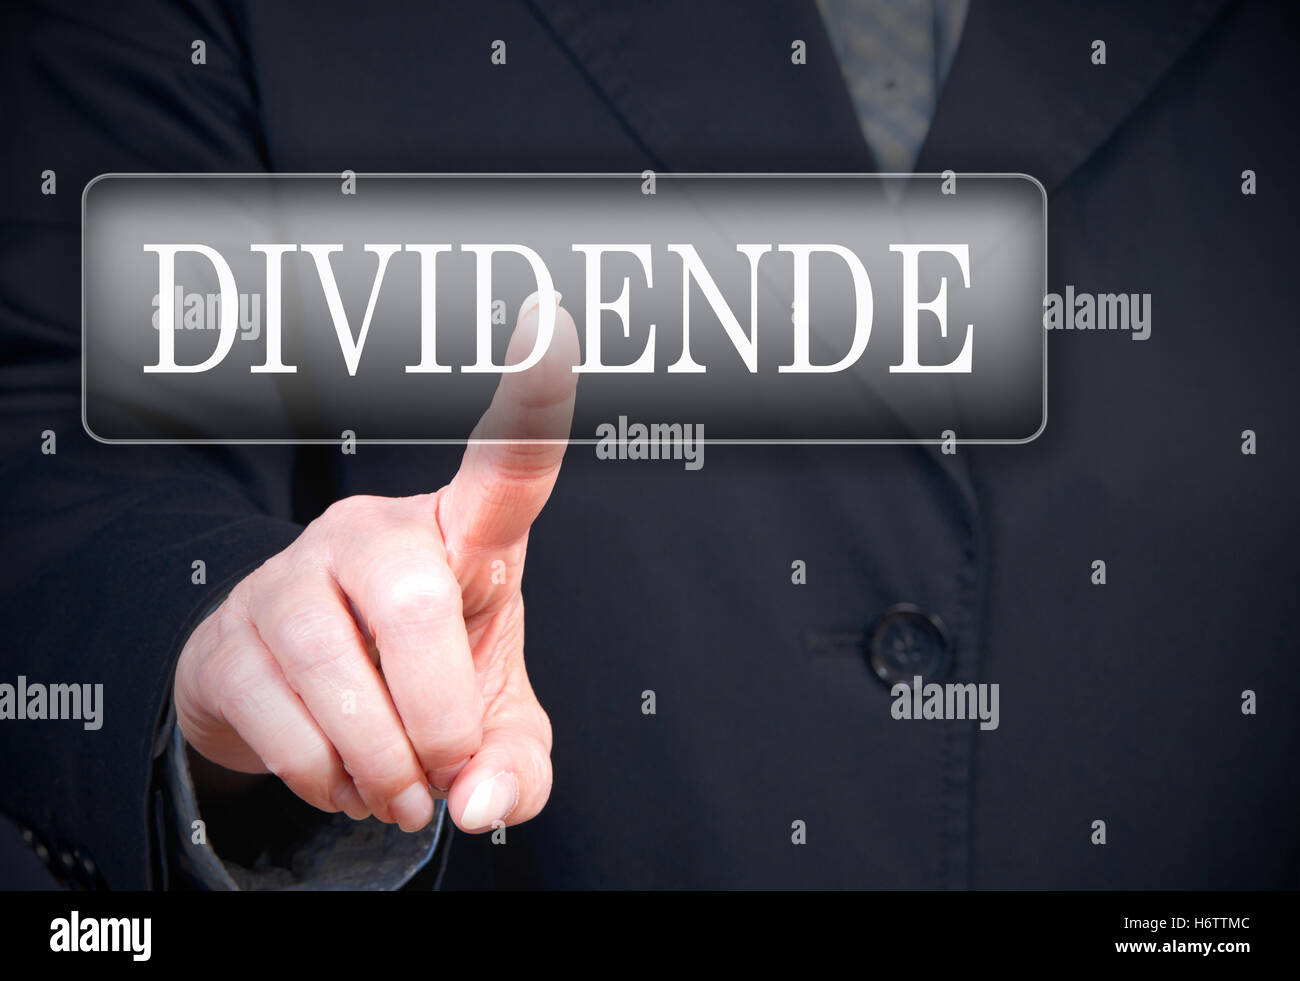 dividend - Stock Image